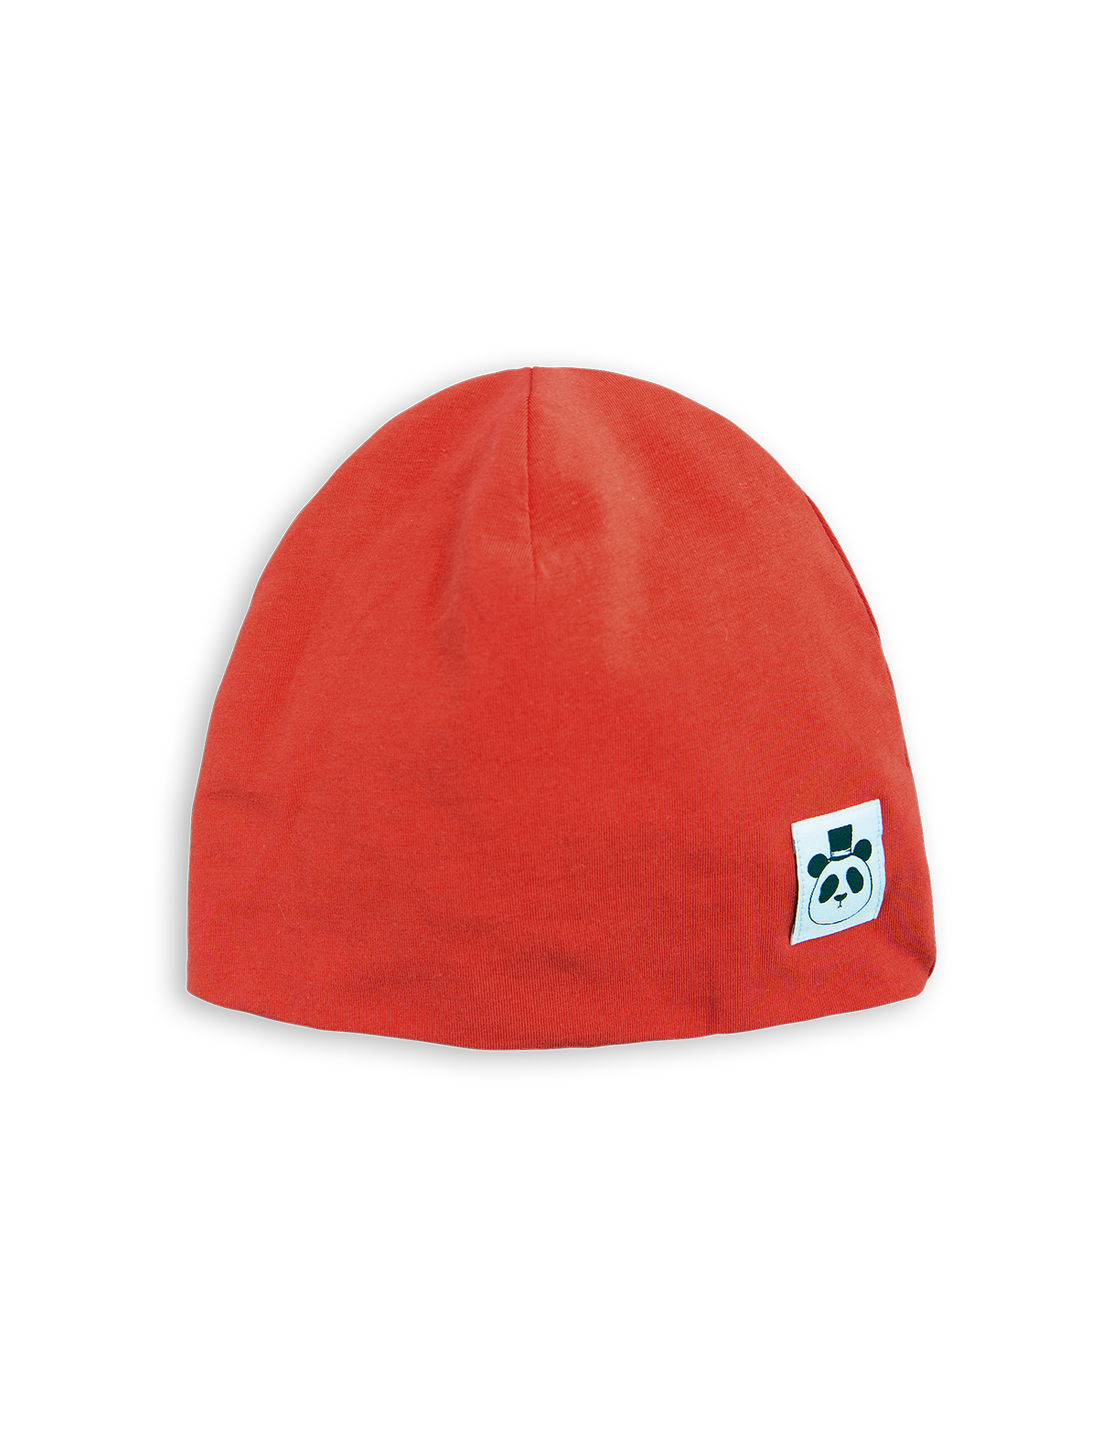 banner royalty free download Basic in mini rodini. Beanie transparent red